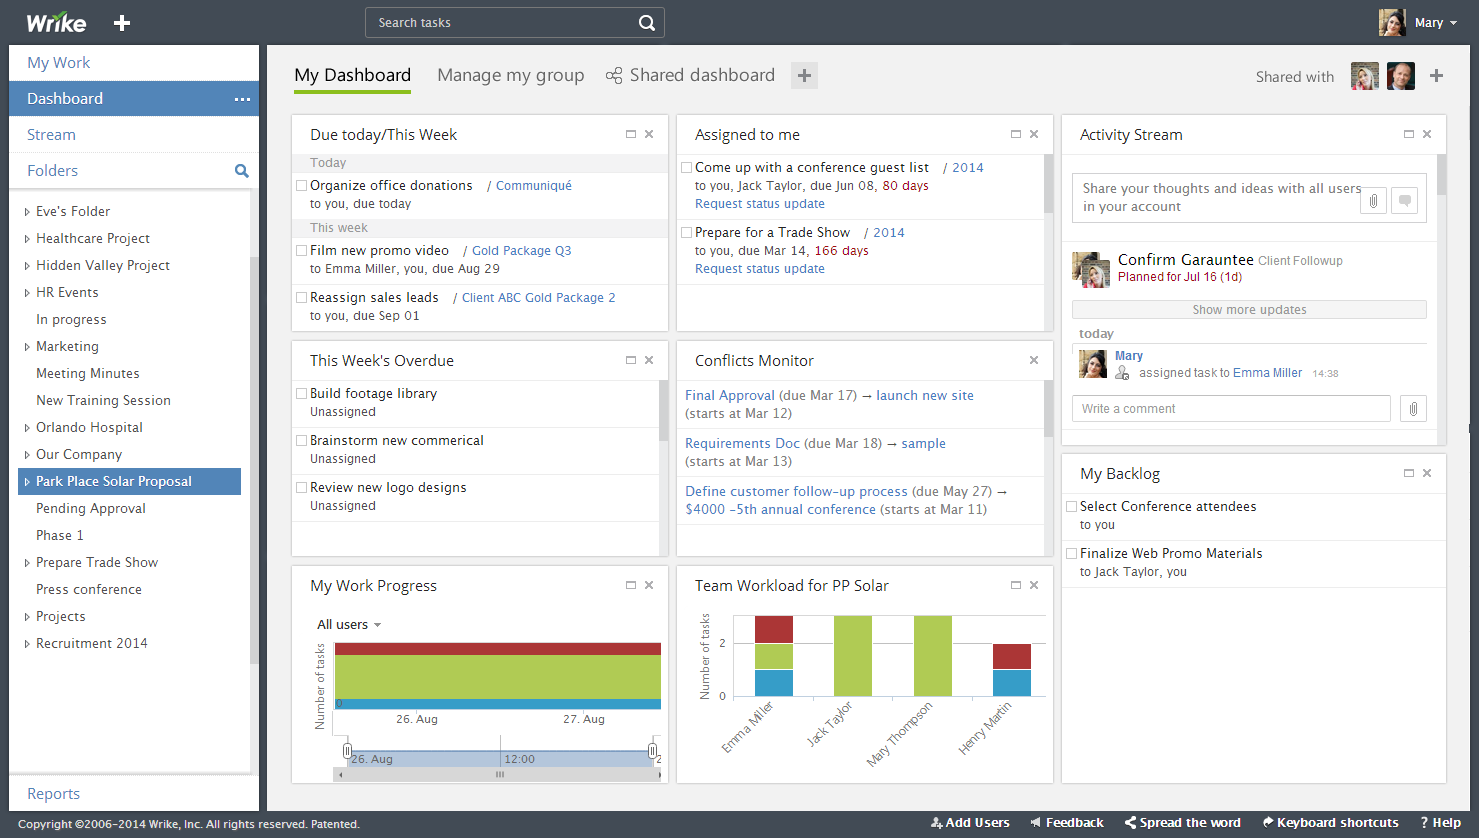 Analytics Widgets Actionable Progress Insights Now On